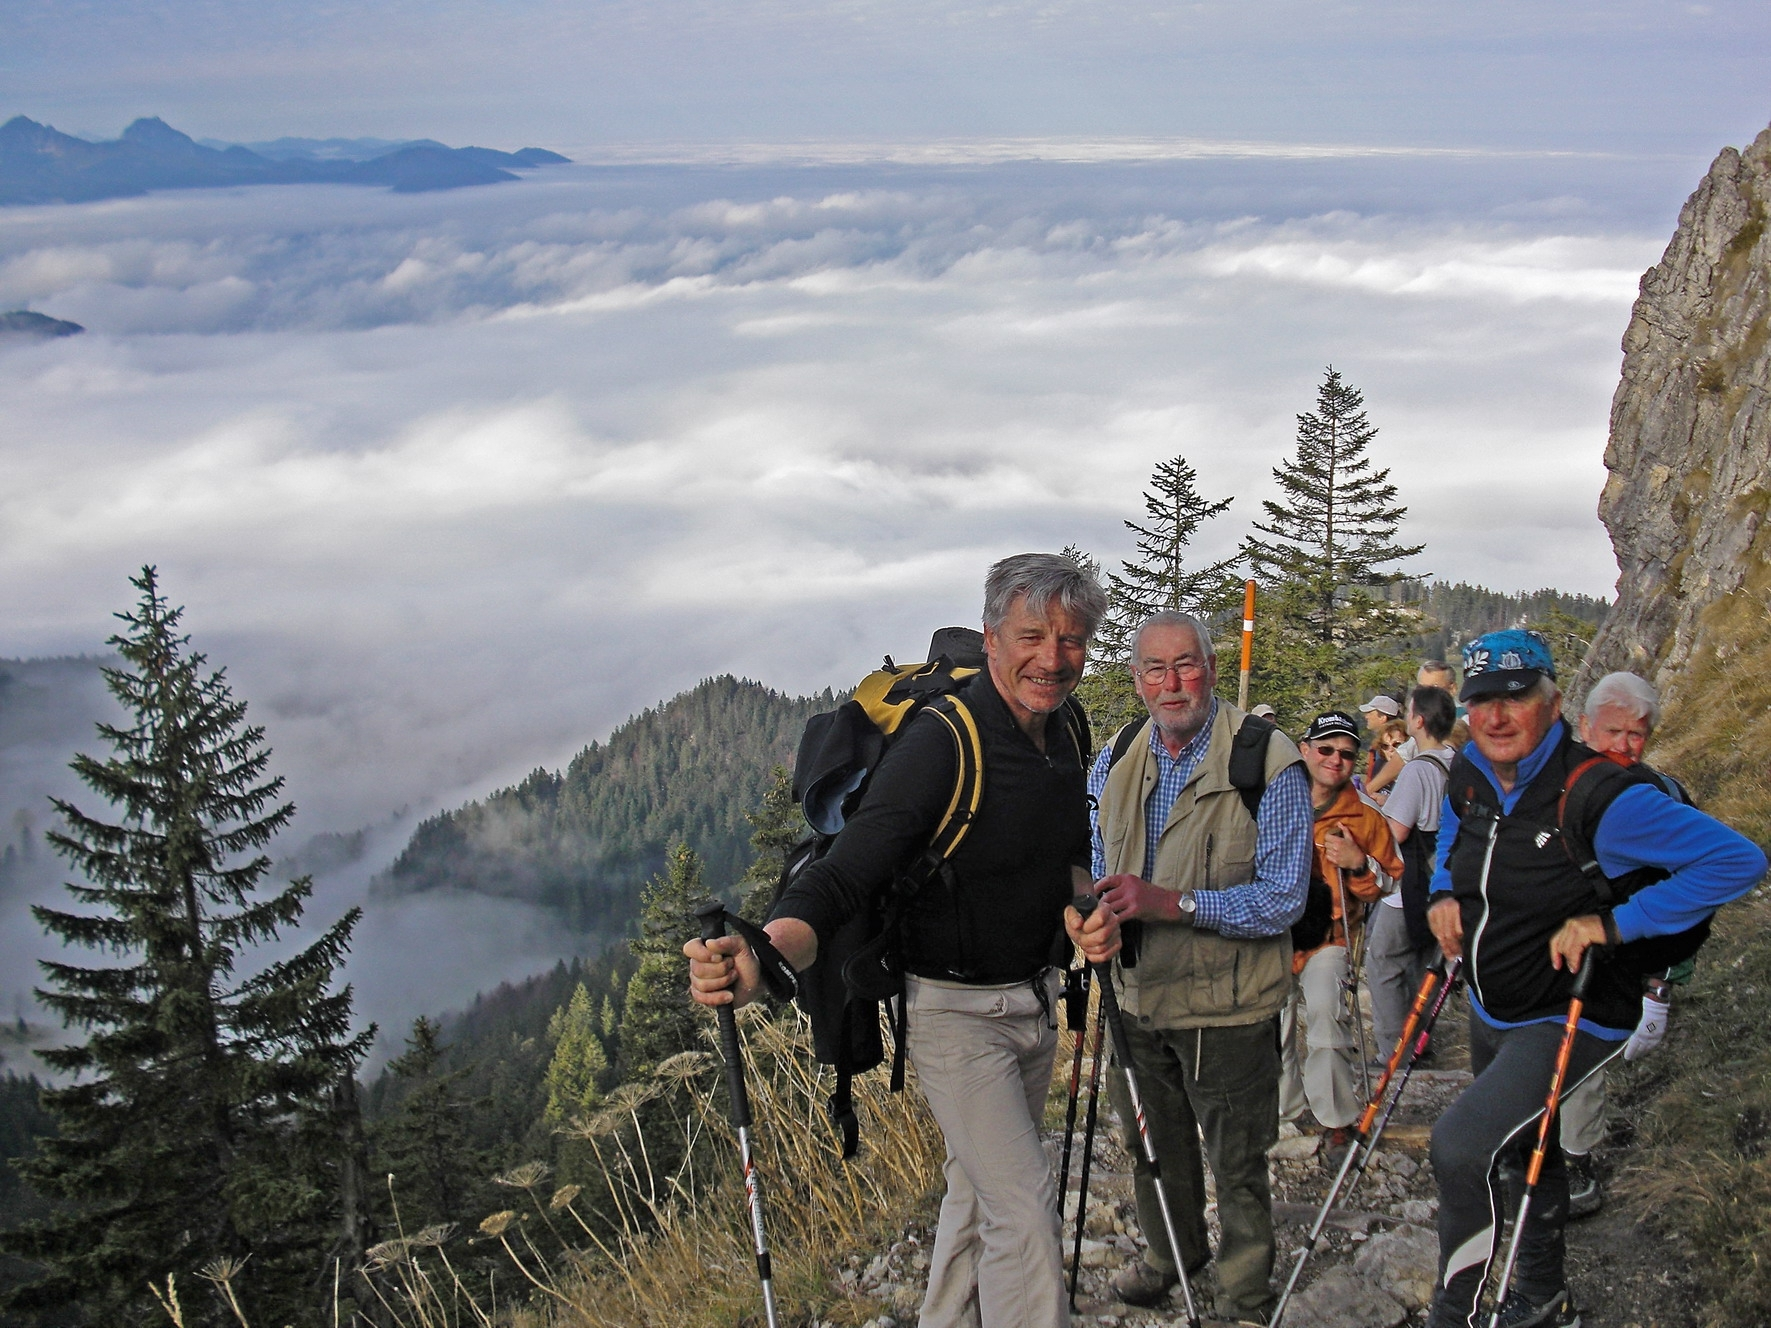 Walkers above the clouds in Bavarian Alps